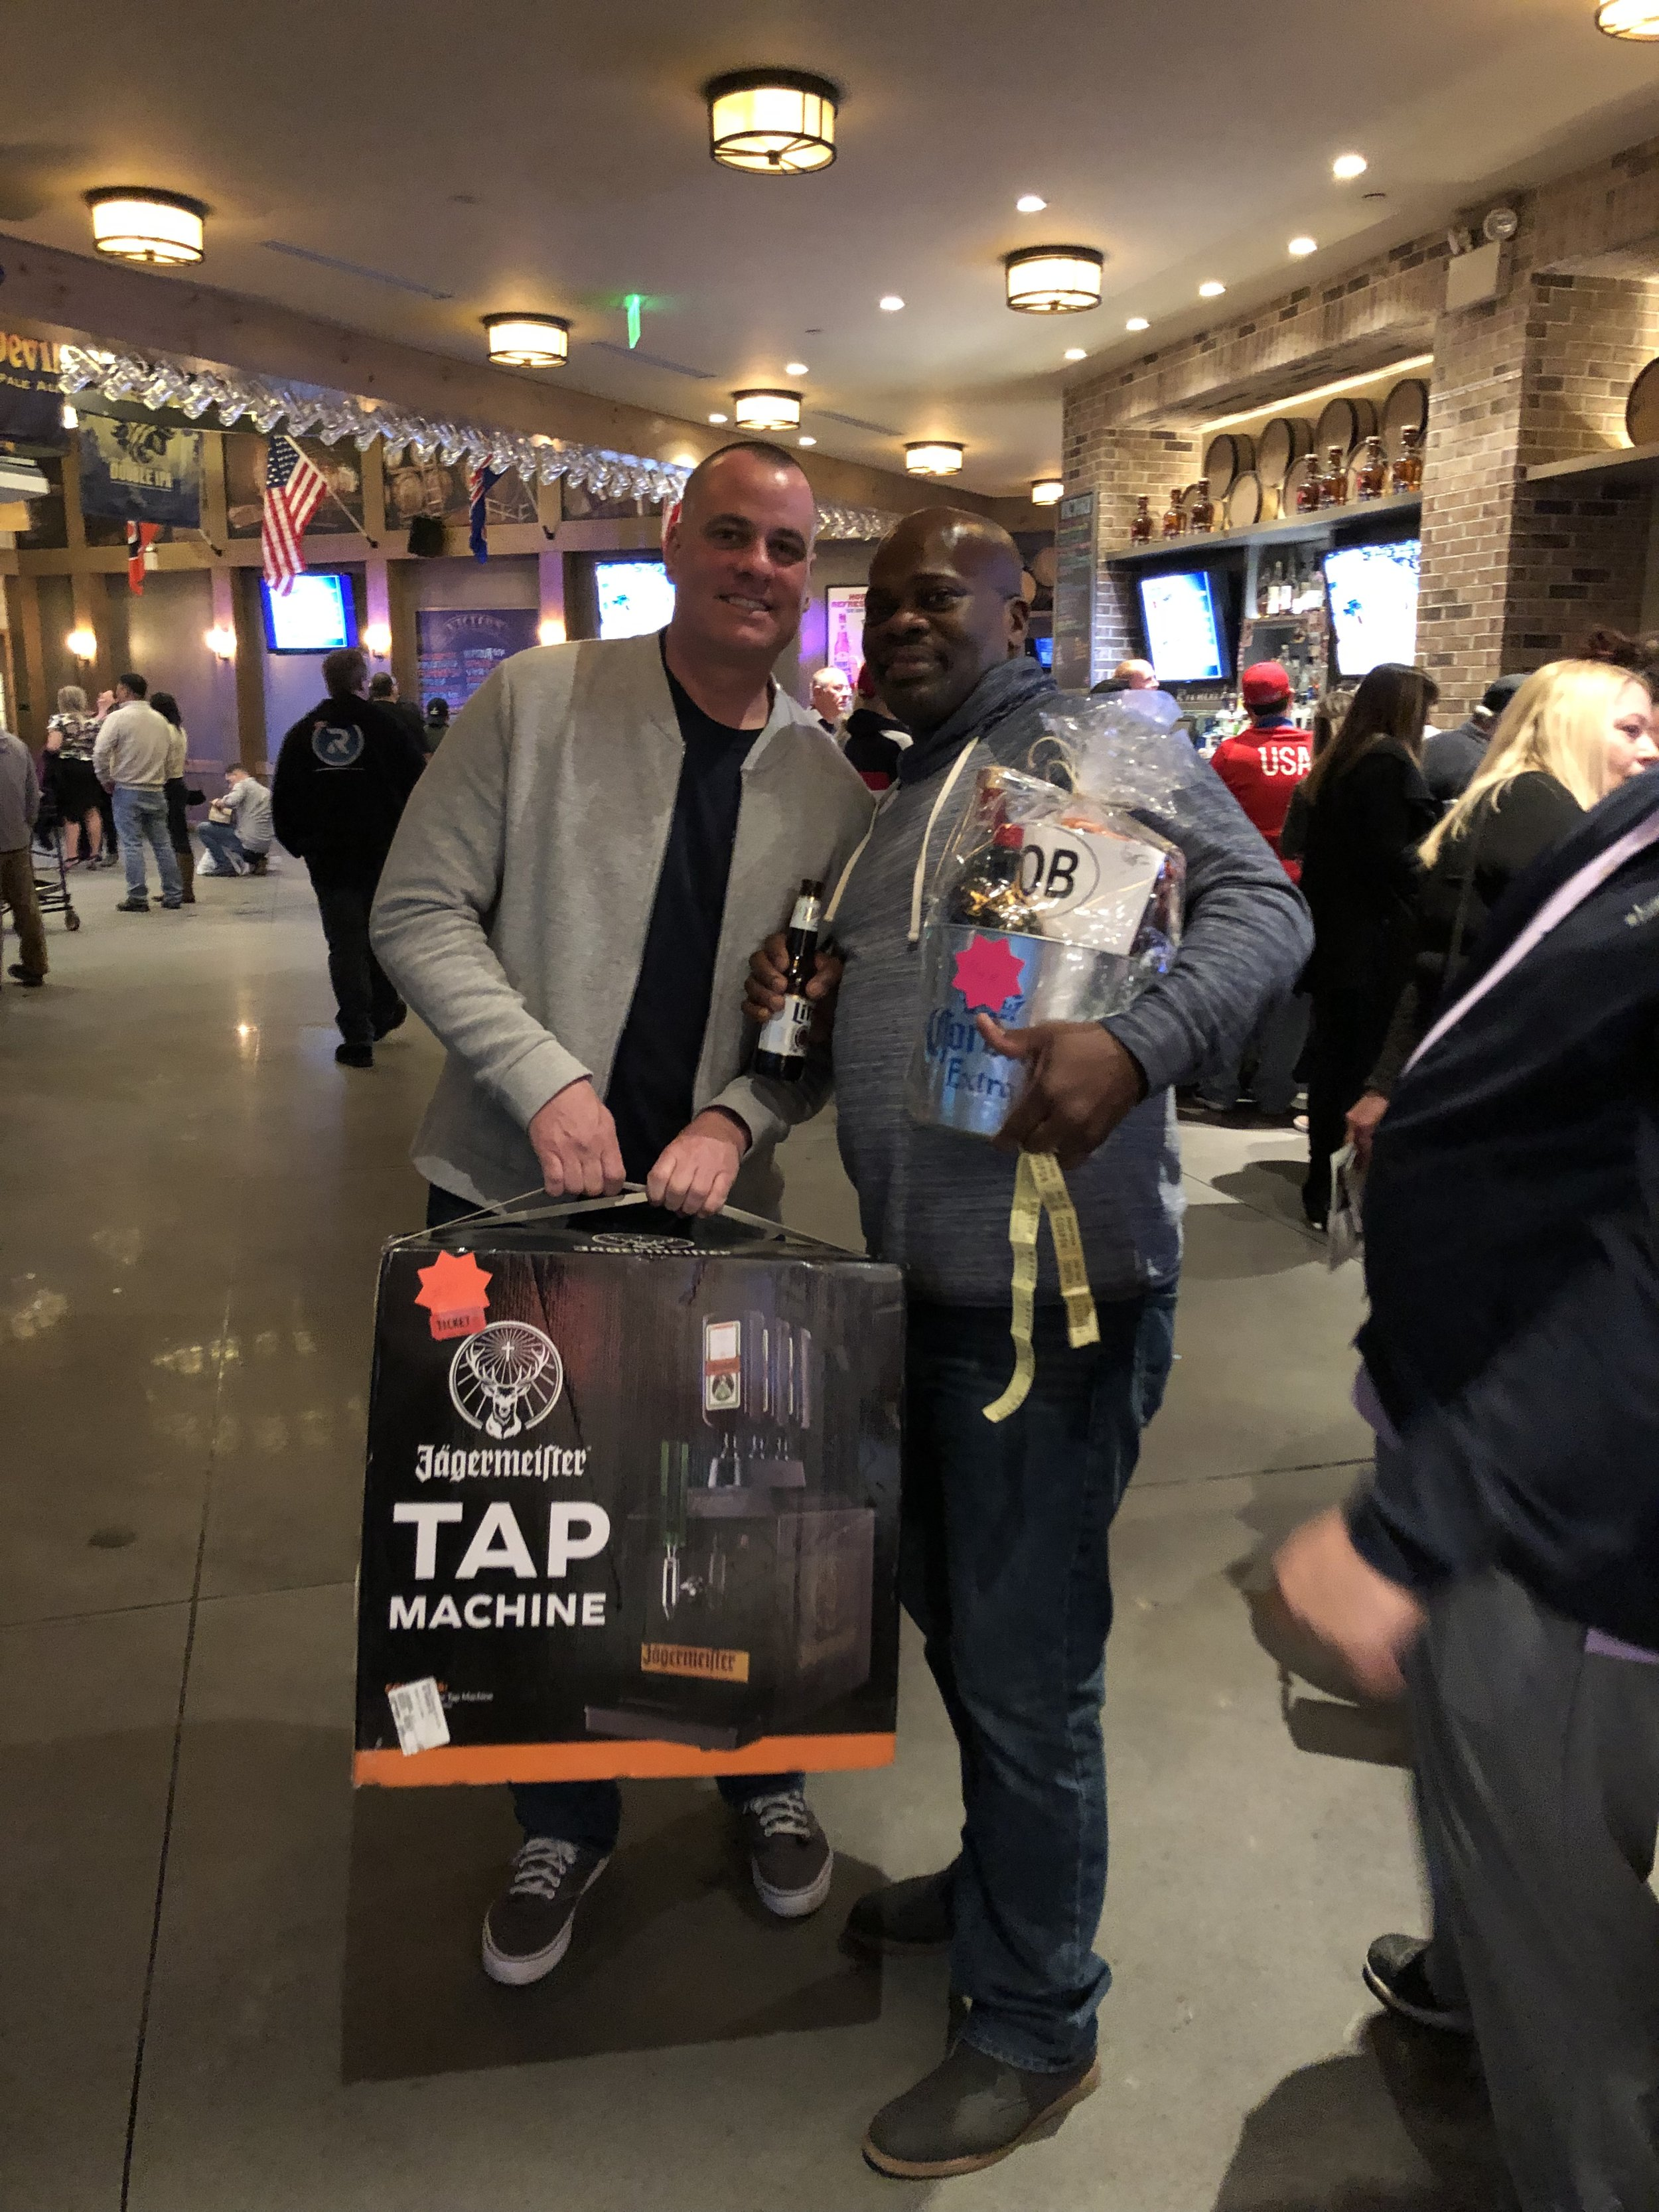 Liquor basket winner Donovan with double winner Jerry Malone who also took home a Jagermeister tap machine.